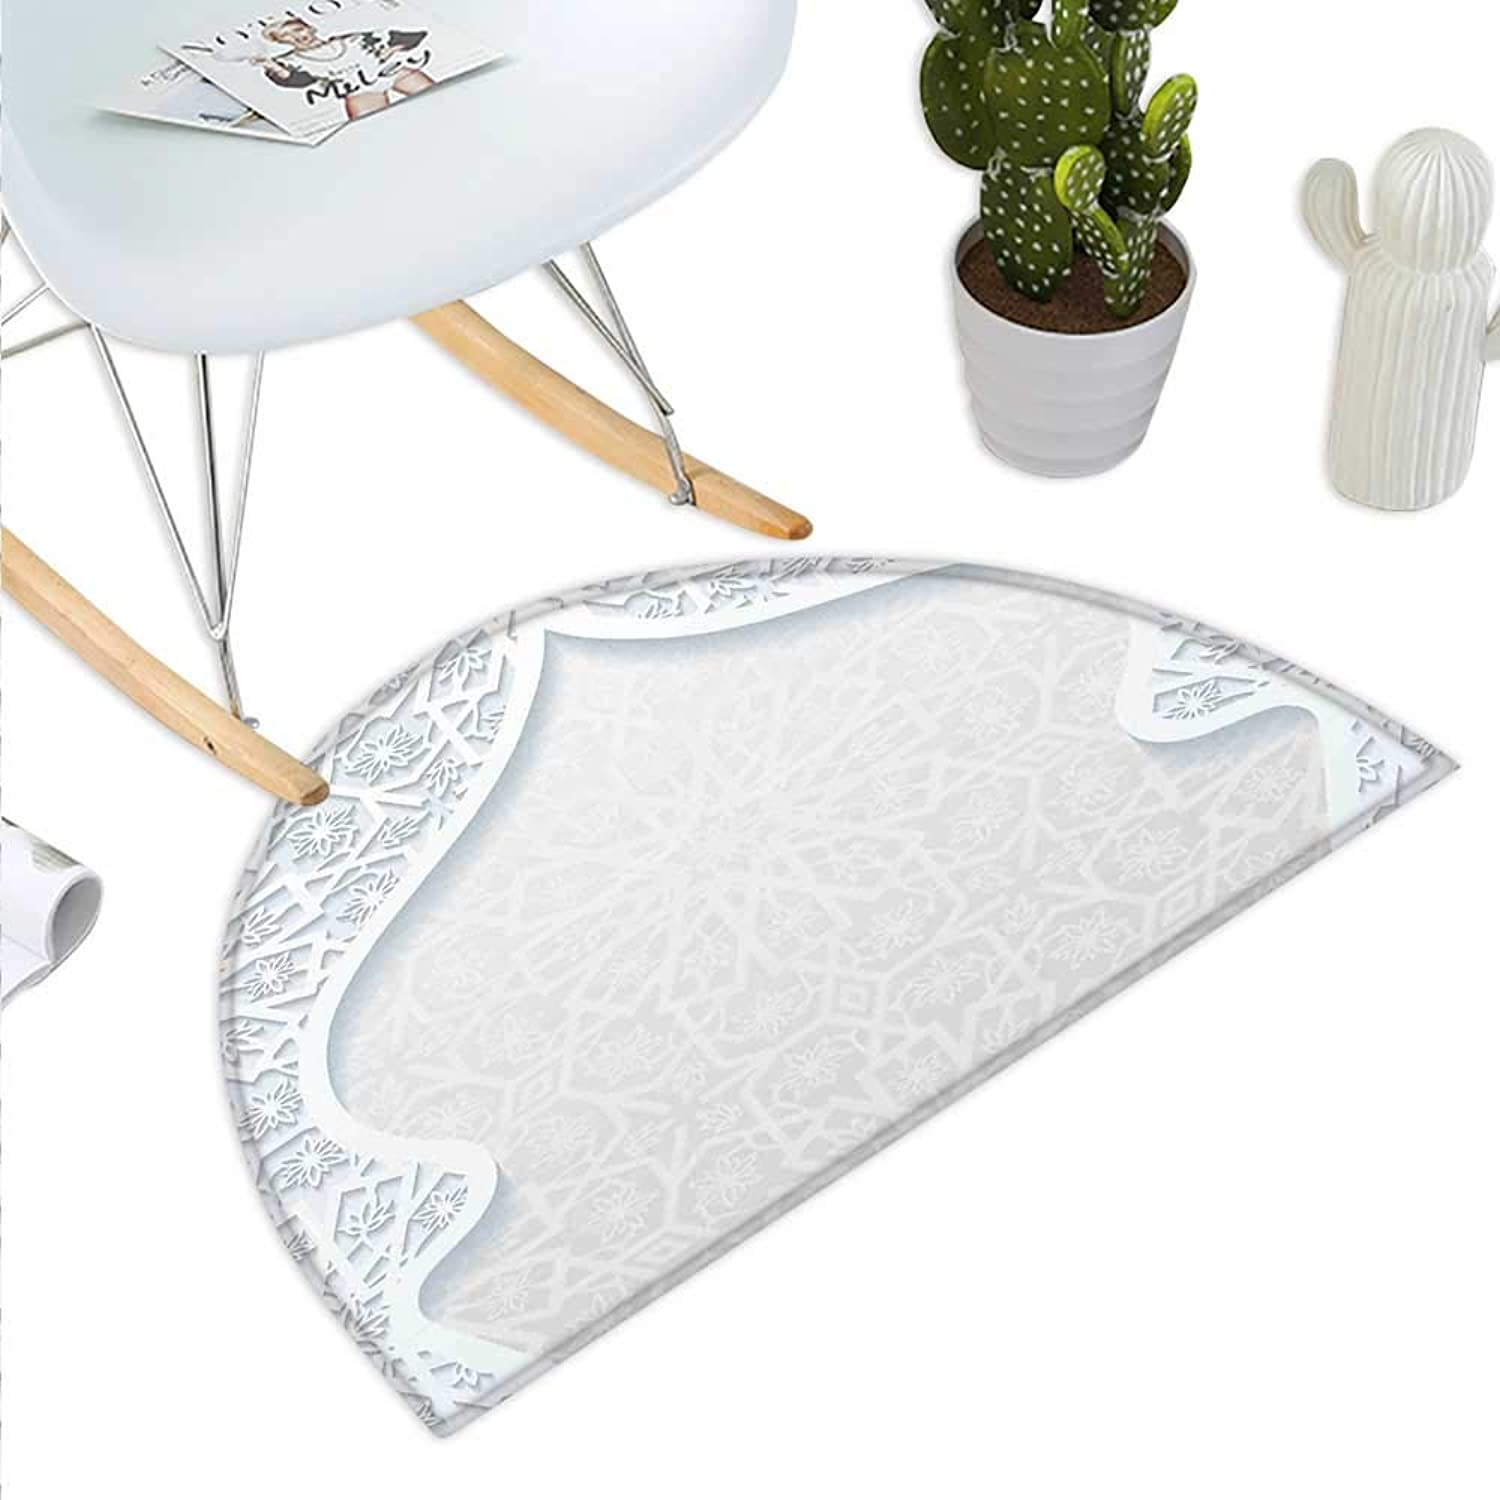 Pale bluee Semicircle Doormat Arabesque Style Arched Royal Persian Figure with Floral Cultural Graphic Design Halfmoon doormats H 39.3  xD 59  Pale bluee